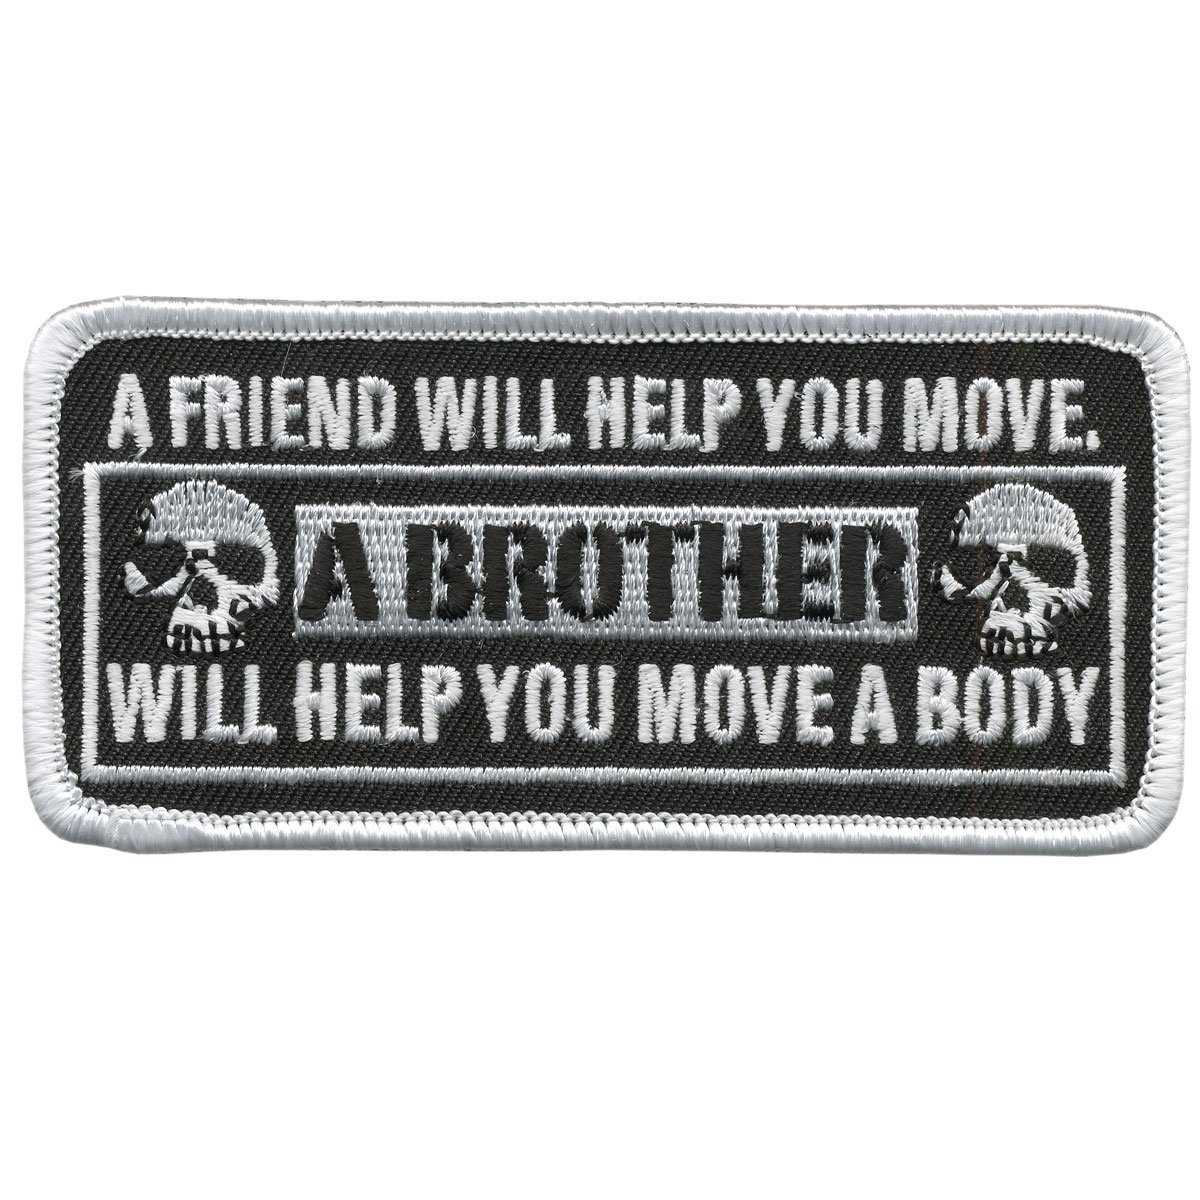 """A Friend Will Help You Move, A Brother Will Help You Move A Body - 4"""" X 1.75"""" Velcro PATCH"""